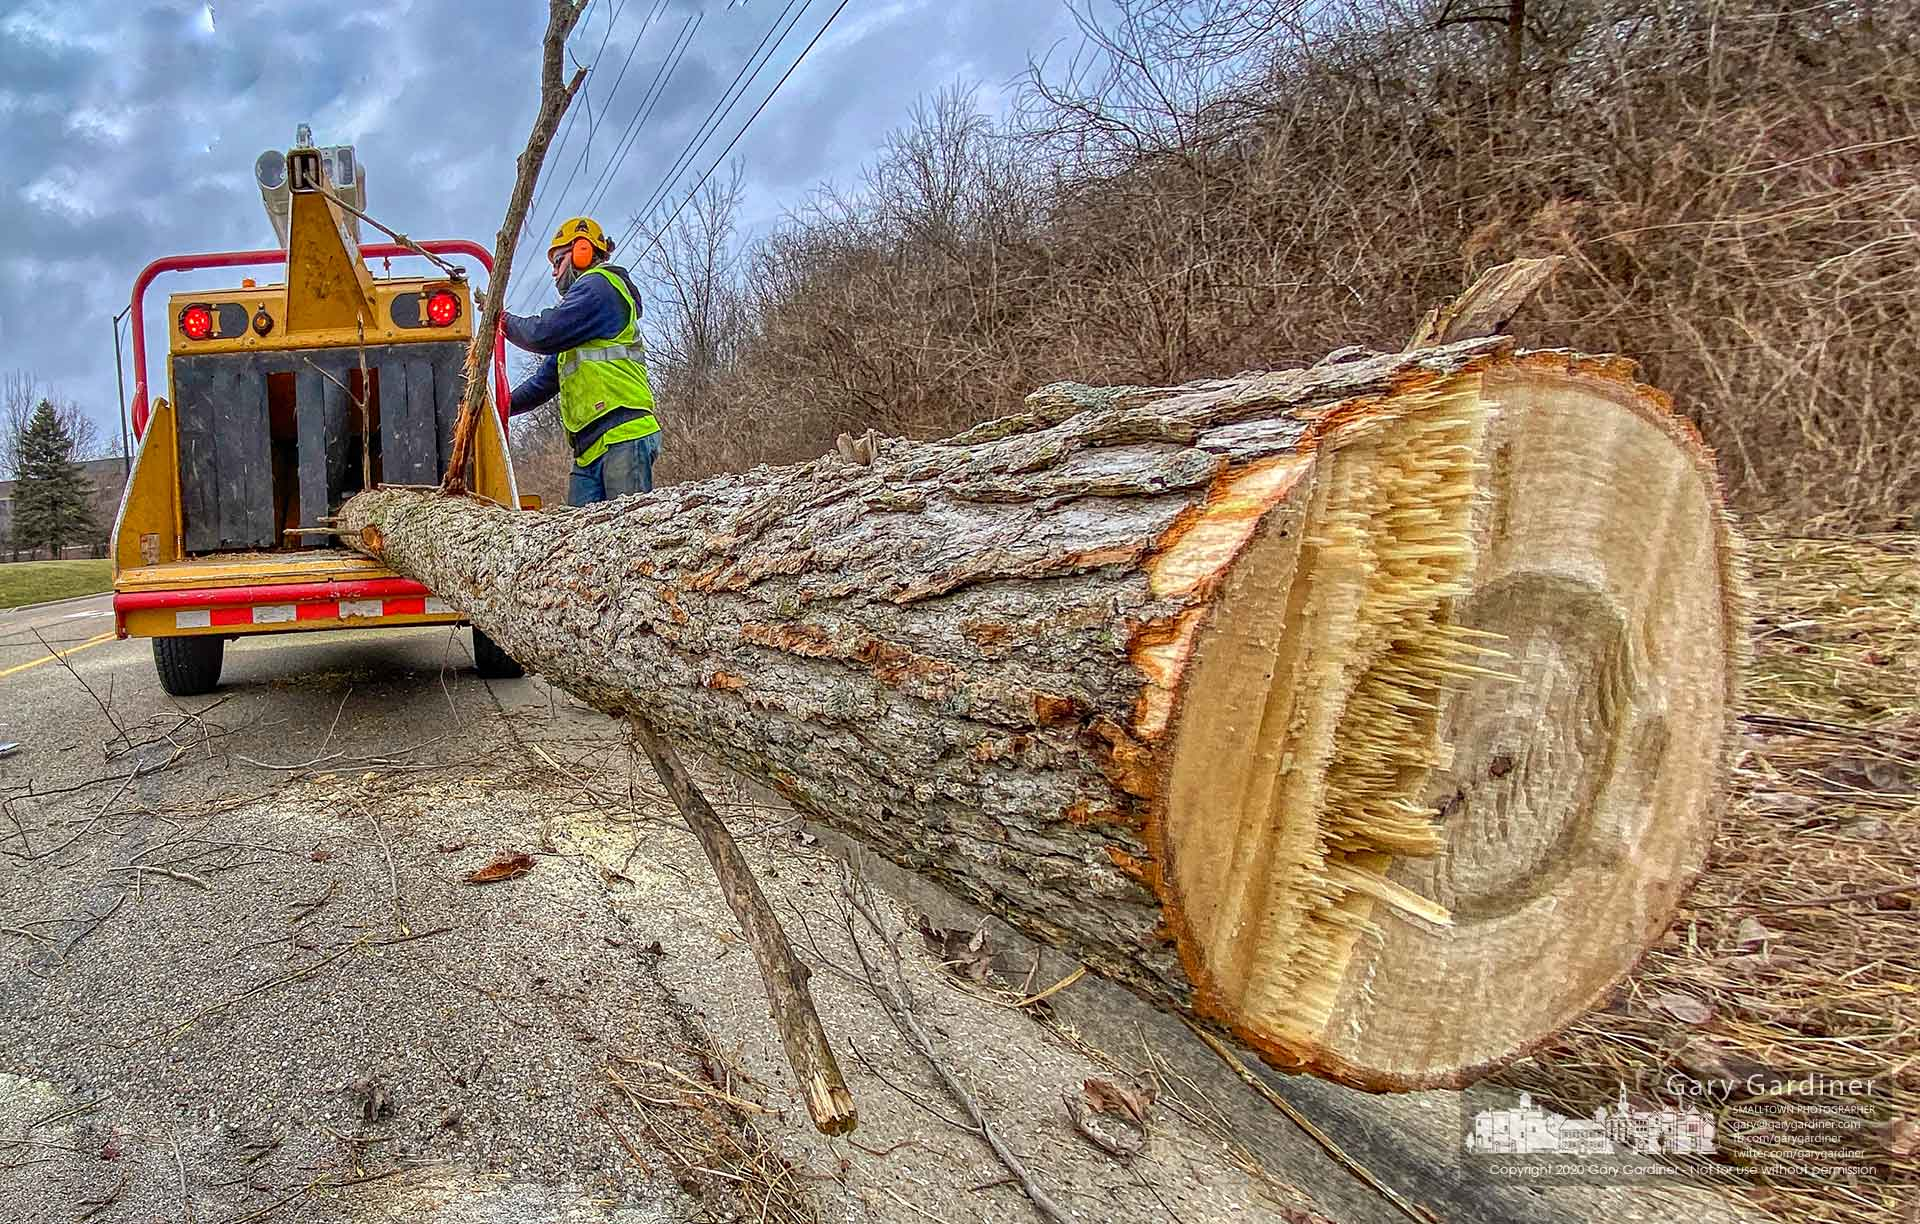 City electric workers load a tree trunk into a shredder after clearing power lines on Africa Road. My Final Photo for Feb. 11, 2020.